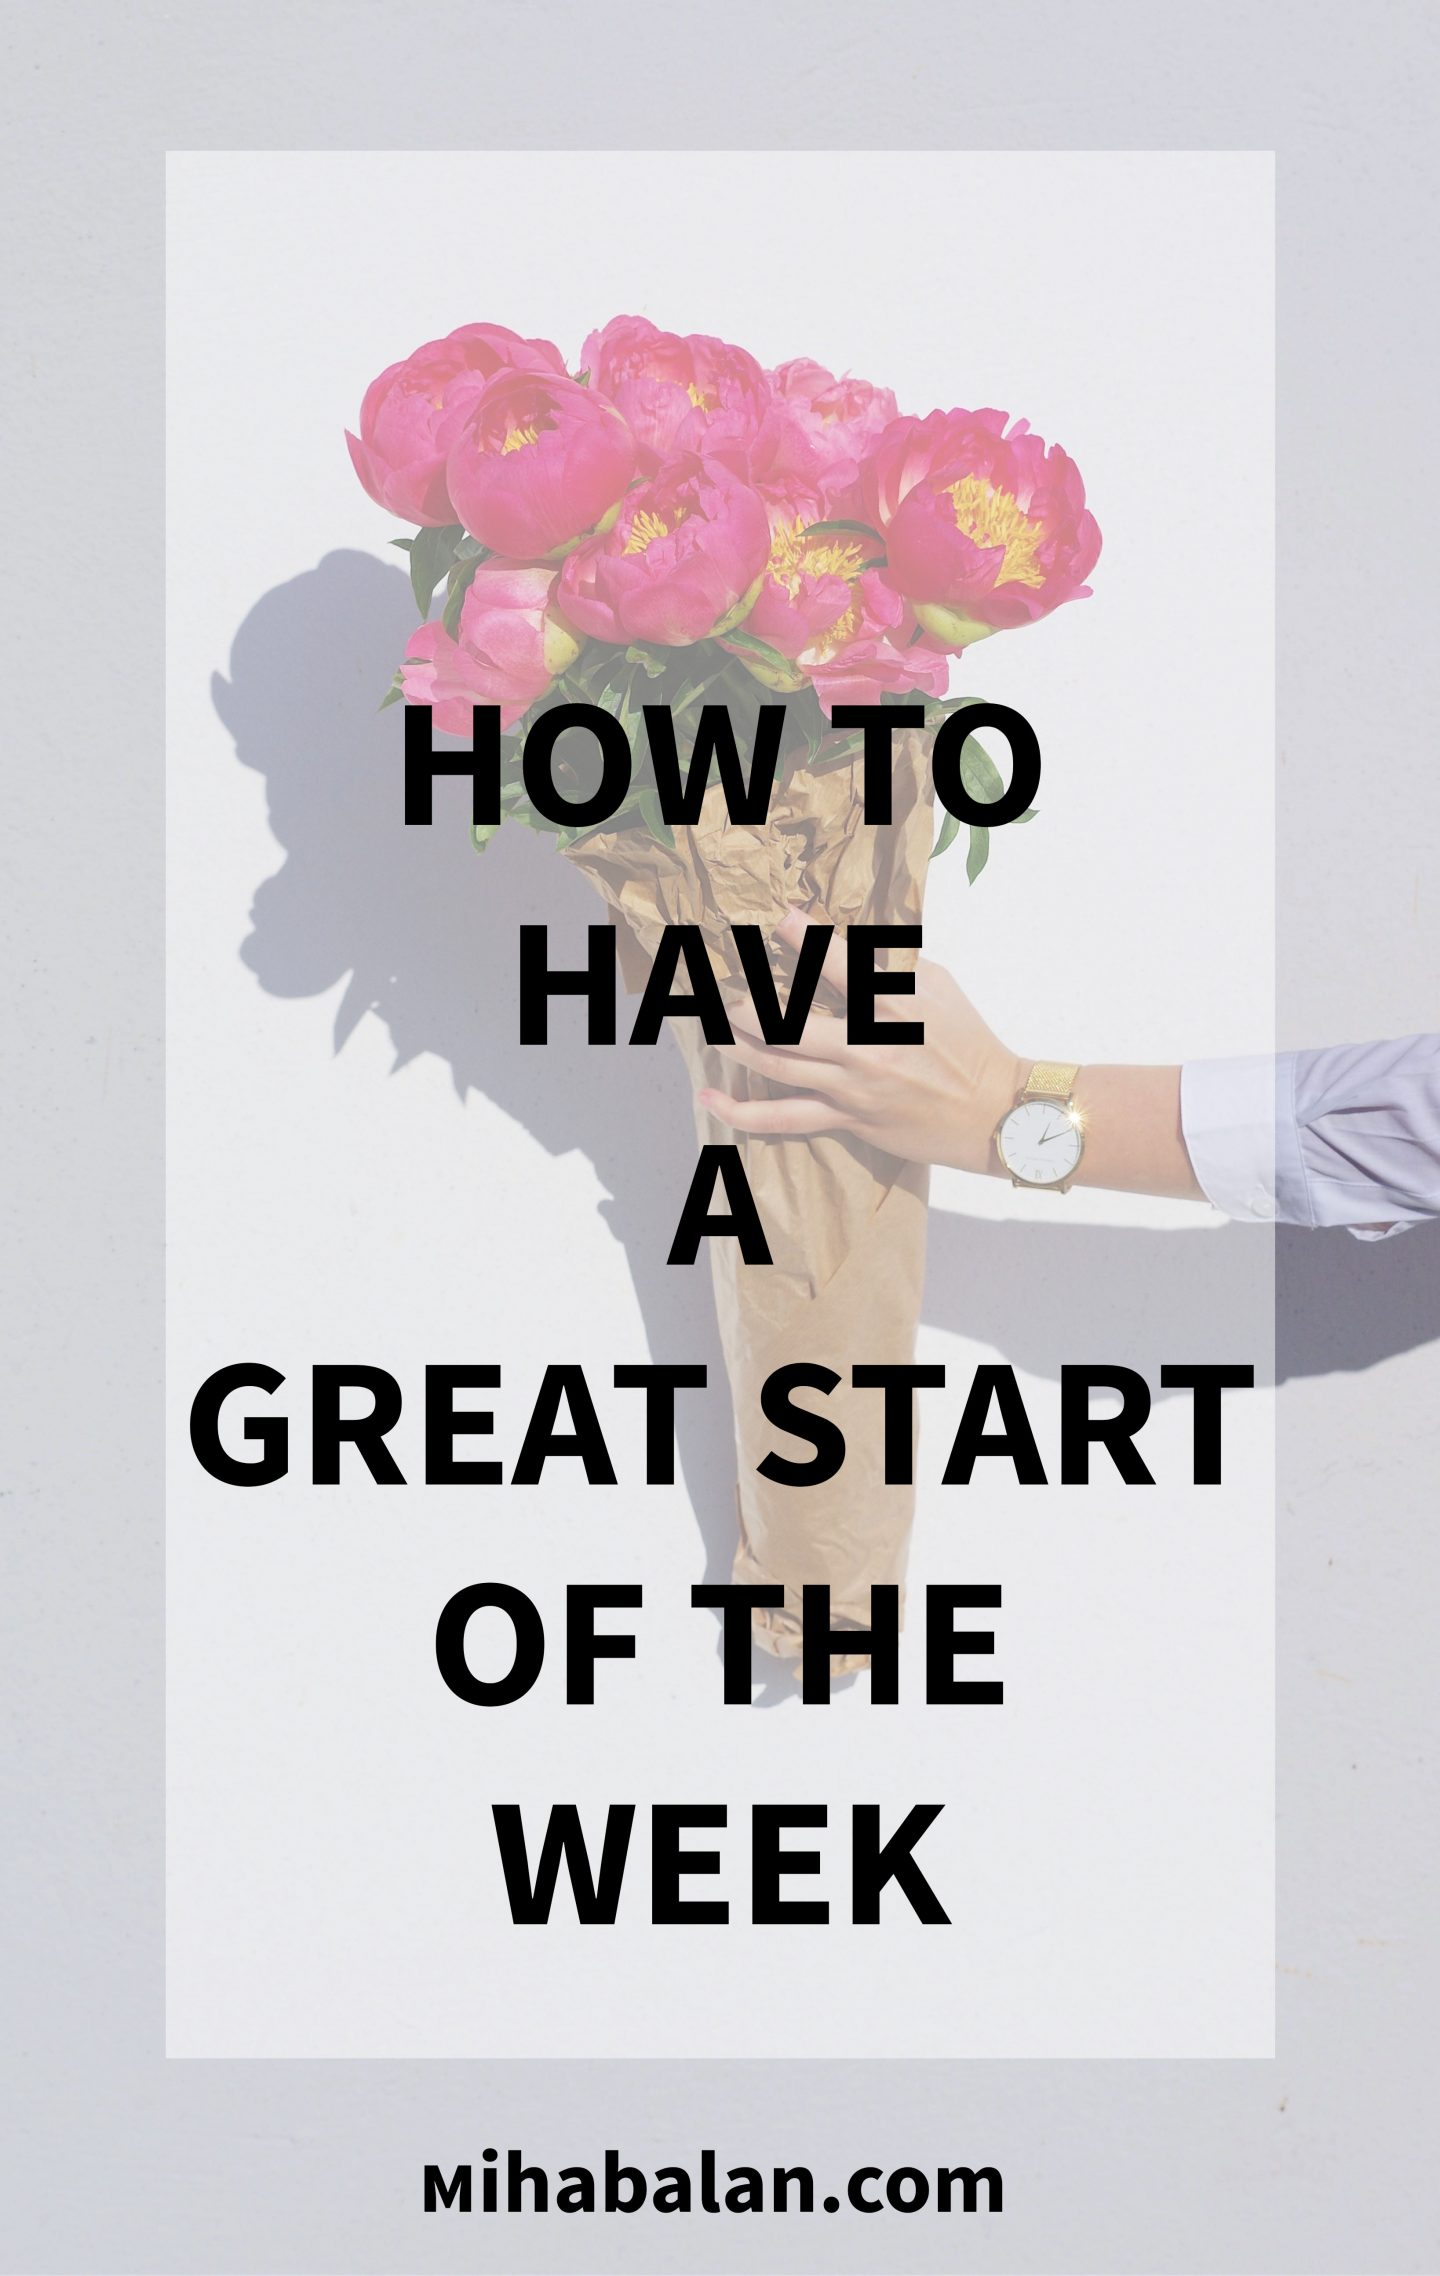 How to have a great start of the week